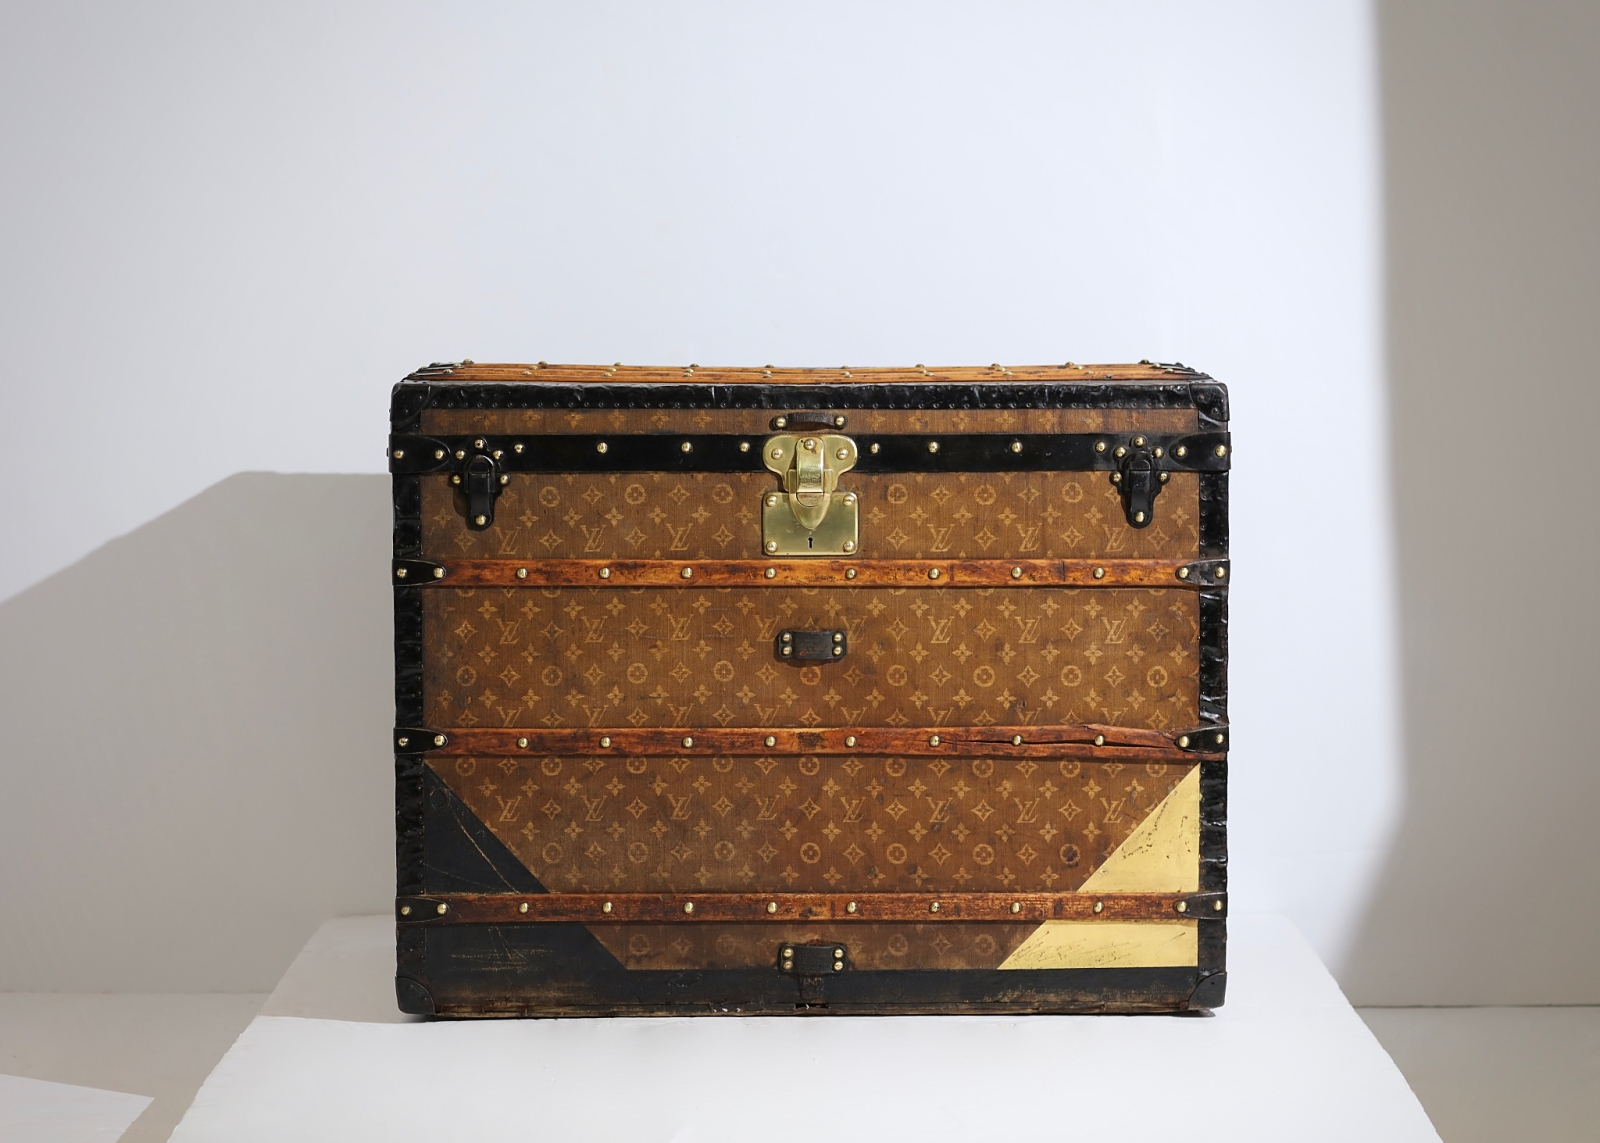 aveled-trunk-louis-vuitton-thumbnail-product-5670-11